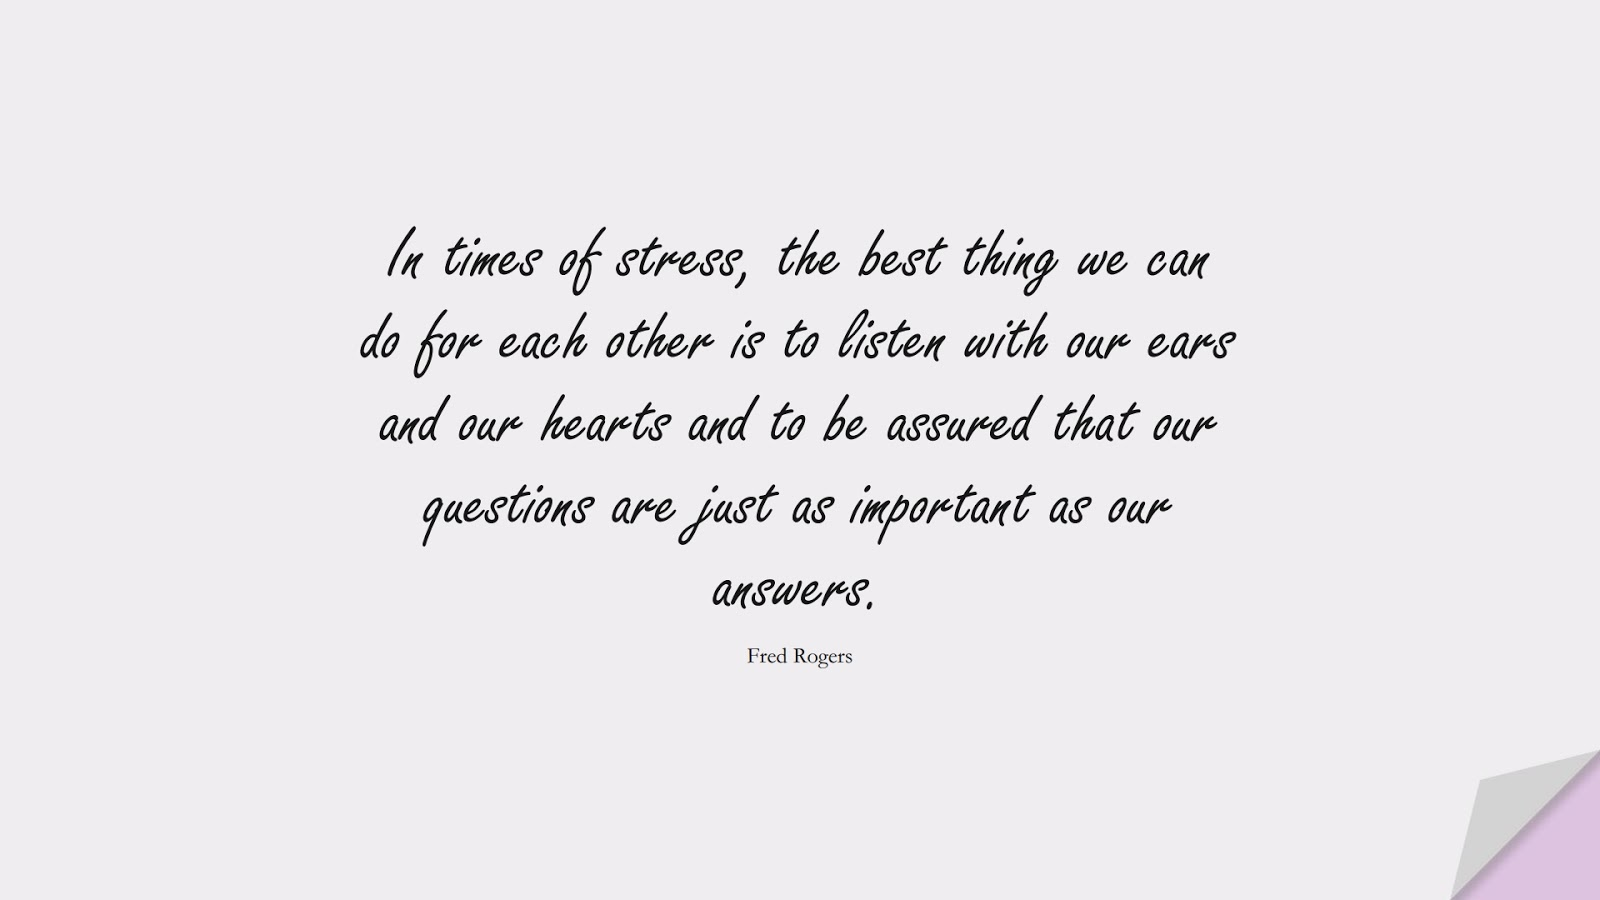 In times of stress, the best thing we can do for each other is to listen with our ears and our hearts and to be assured that our questions are just as important as our answers. (Fred Rogers);  #StressQuotes